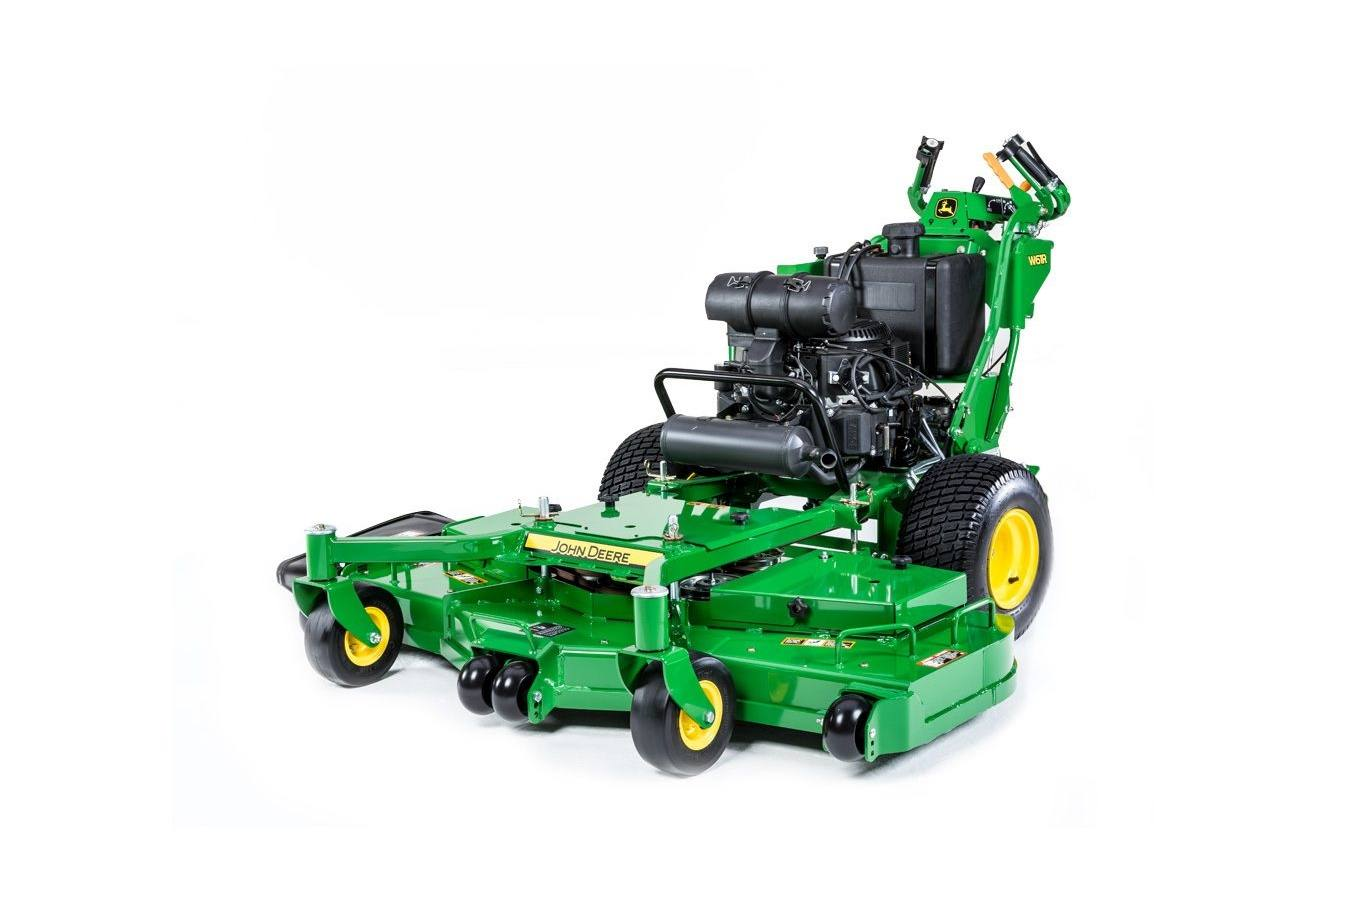 Inventory from John Deere Chief Equipment